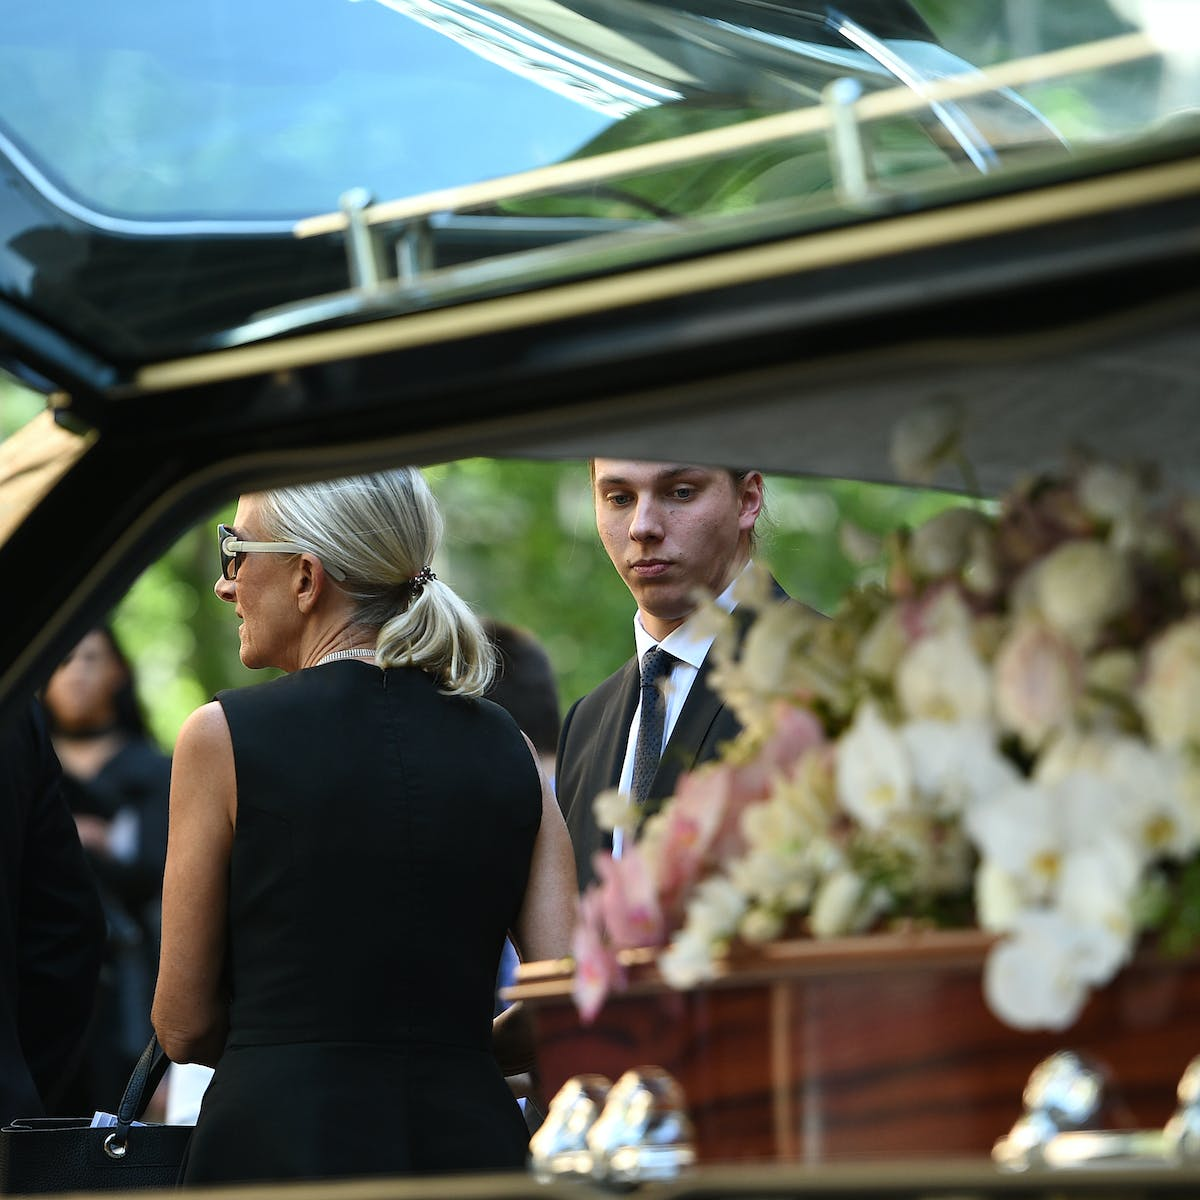 Consumers lose out in funeral industry lacking competition and